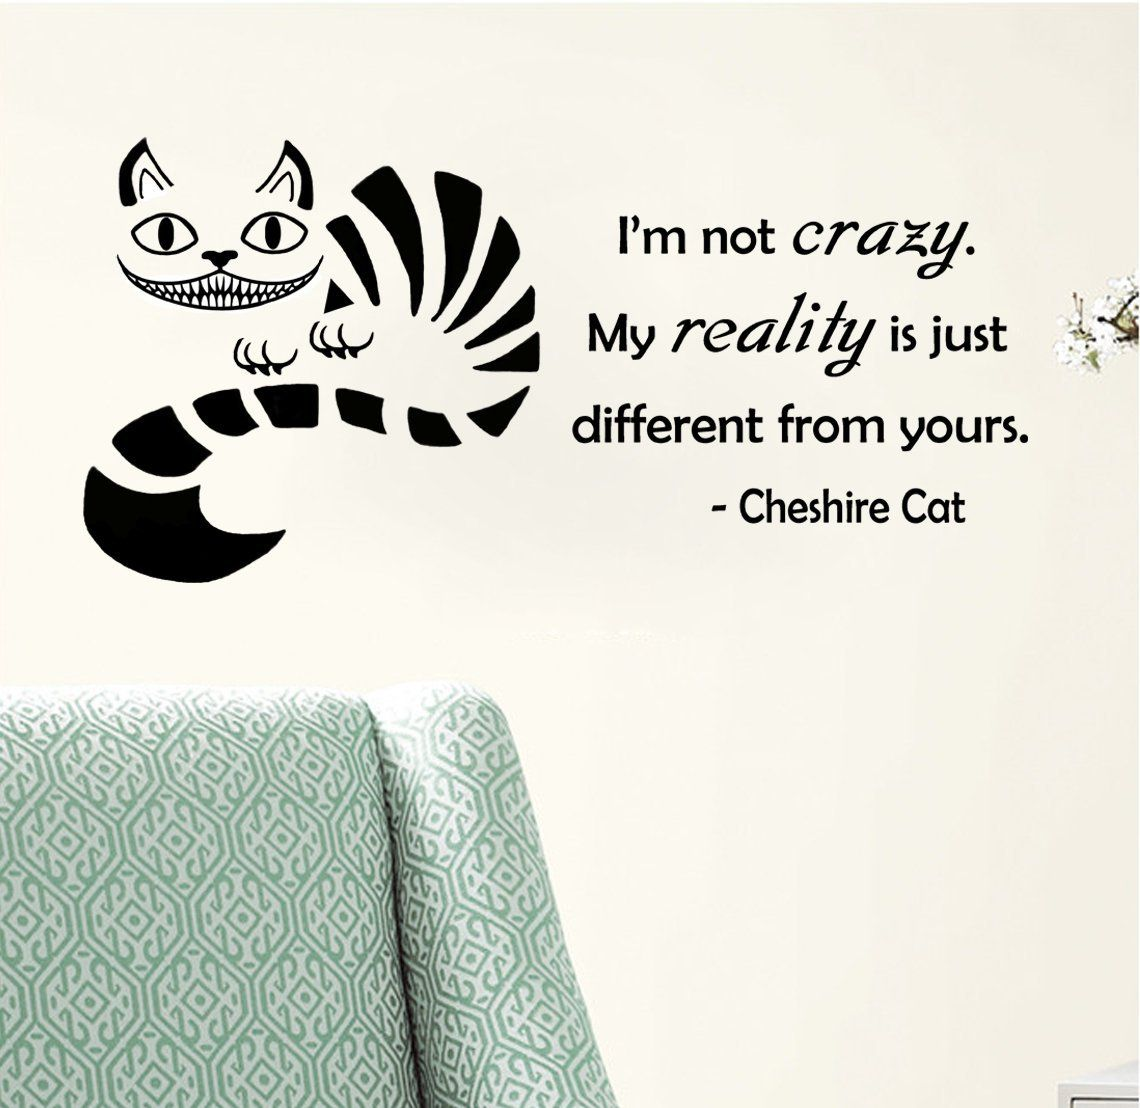 Amazon cheshire cat quoteium not crazy my reality is just